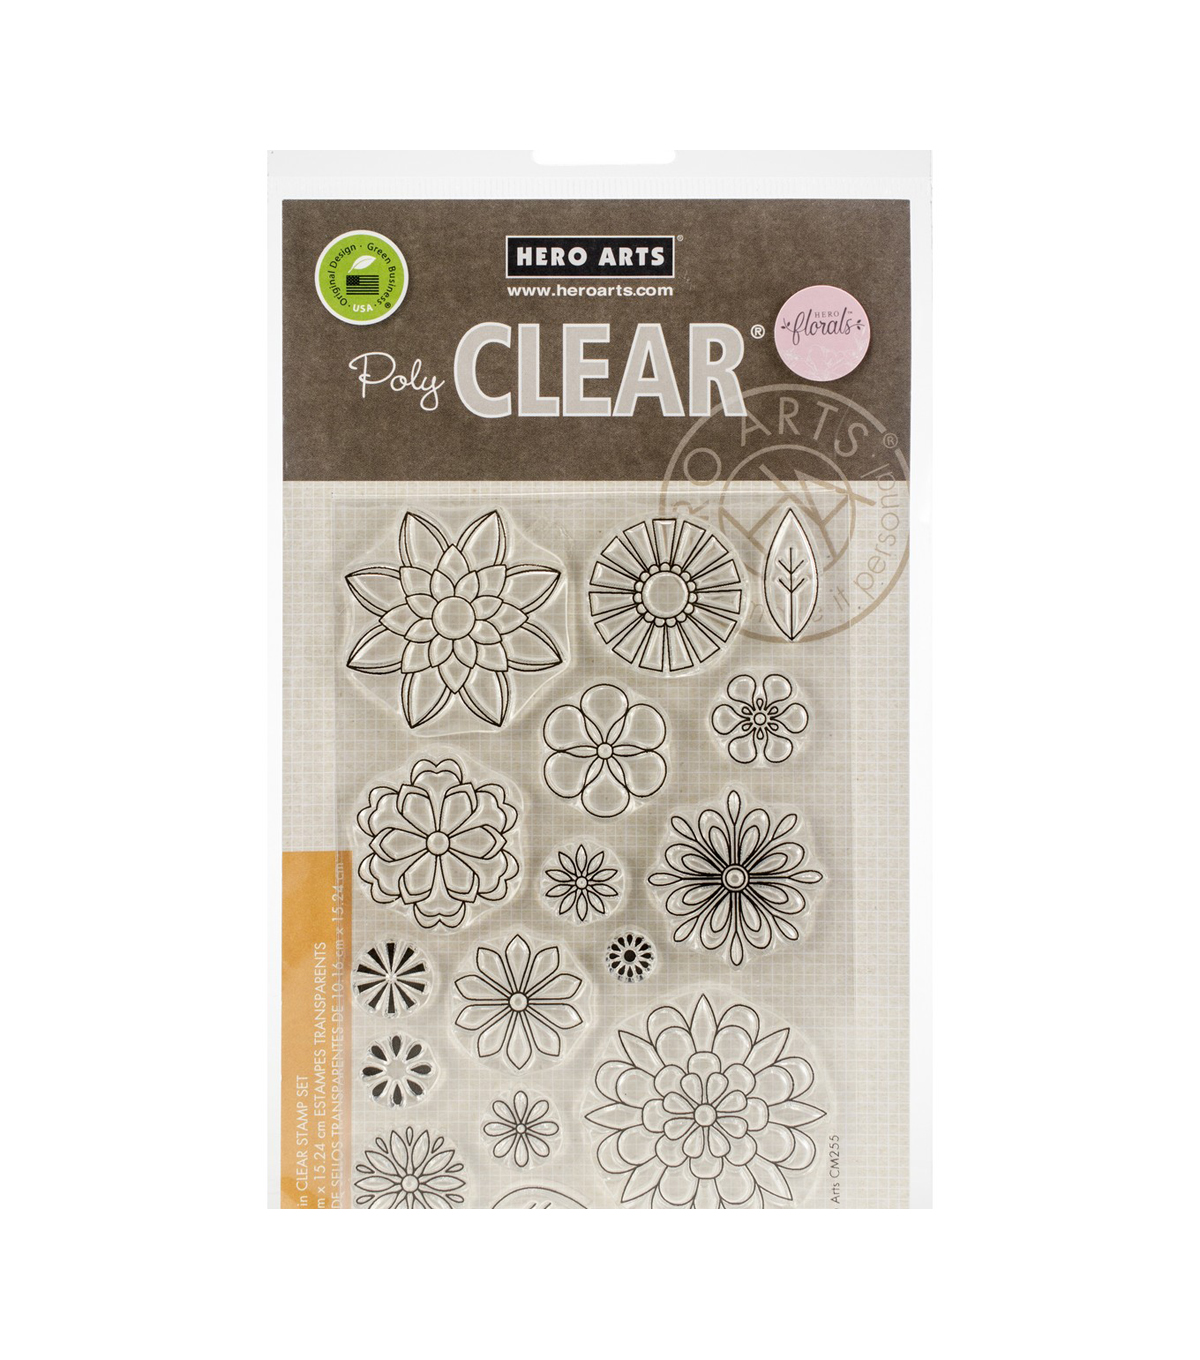 Hero Arts Florals 16 pk Poly Clear Stamps-Blossoms for Coloring